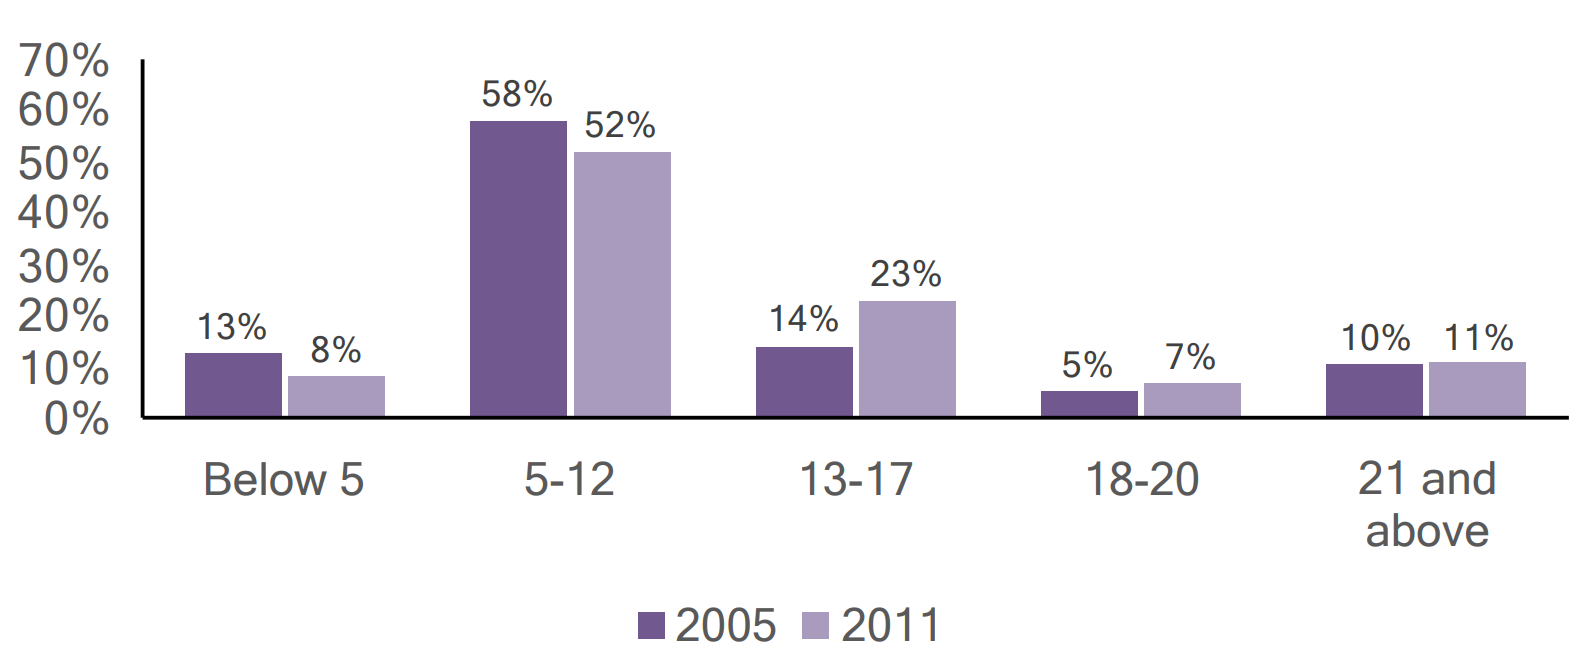 Bar graph of individuals with autism in Butler county by age, comparing 2005 and 2011 data.